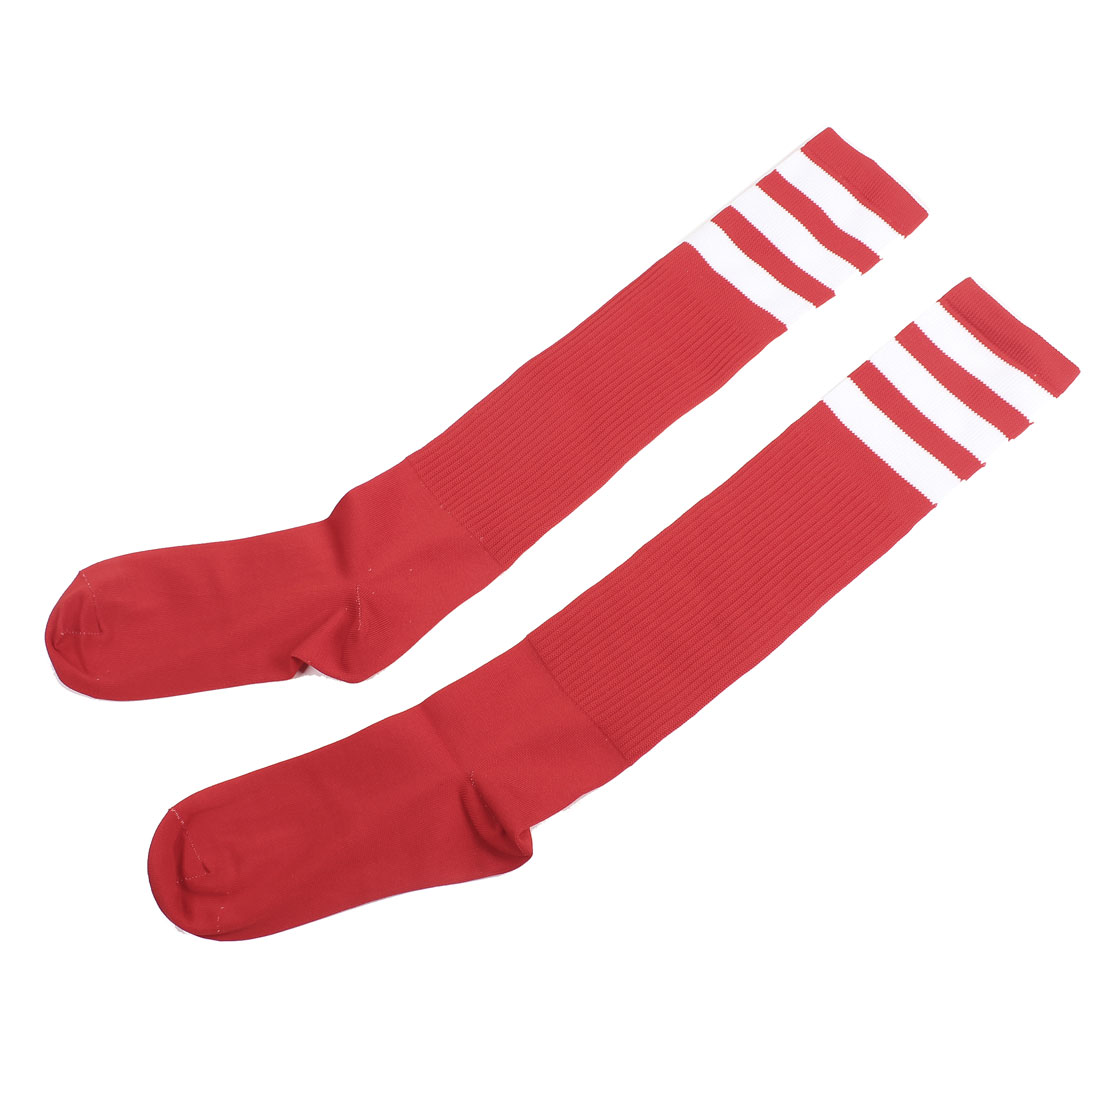 Pair Striped Pattern Spandex Knee High Soccer Socks Red for Men Women